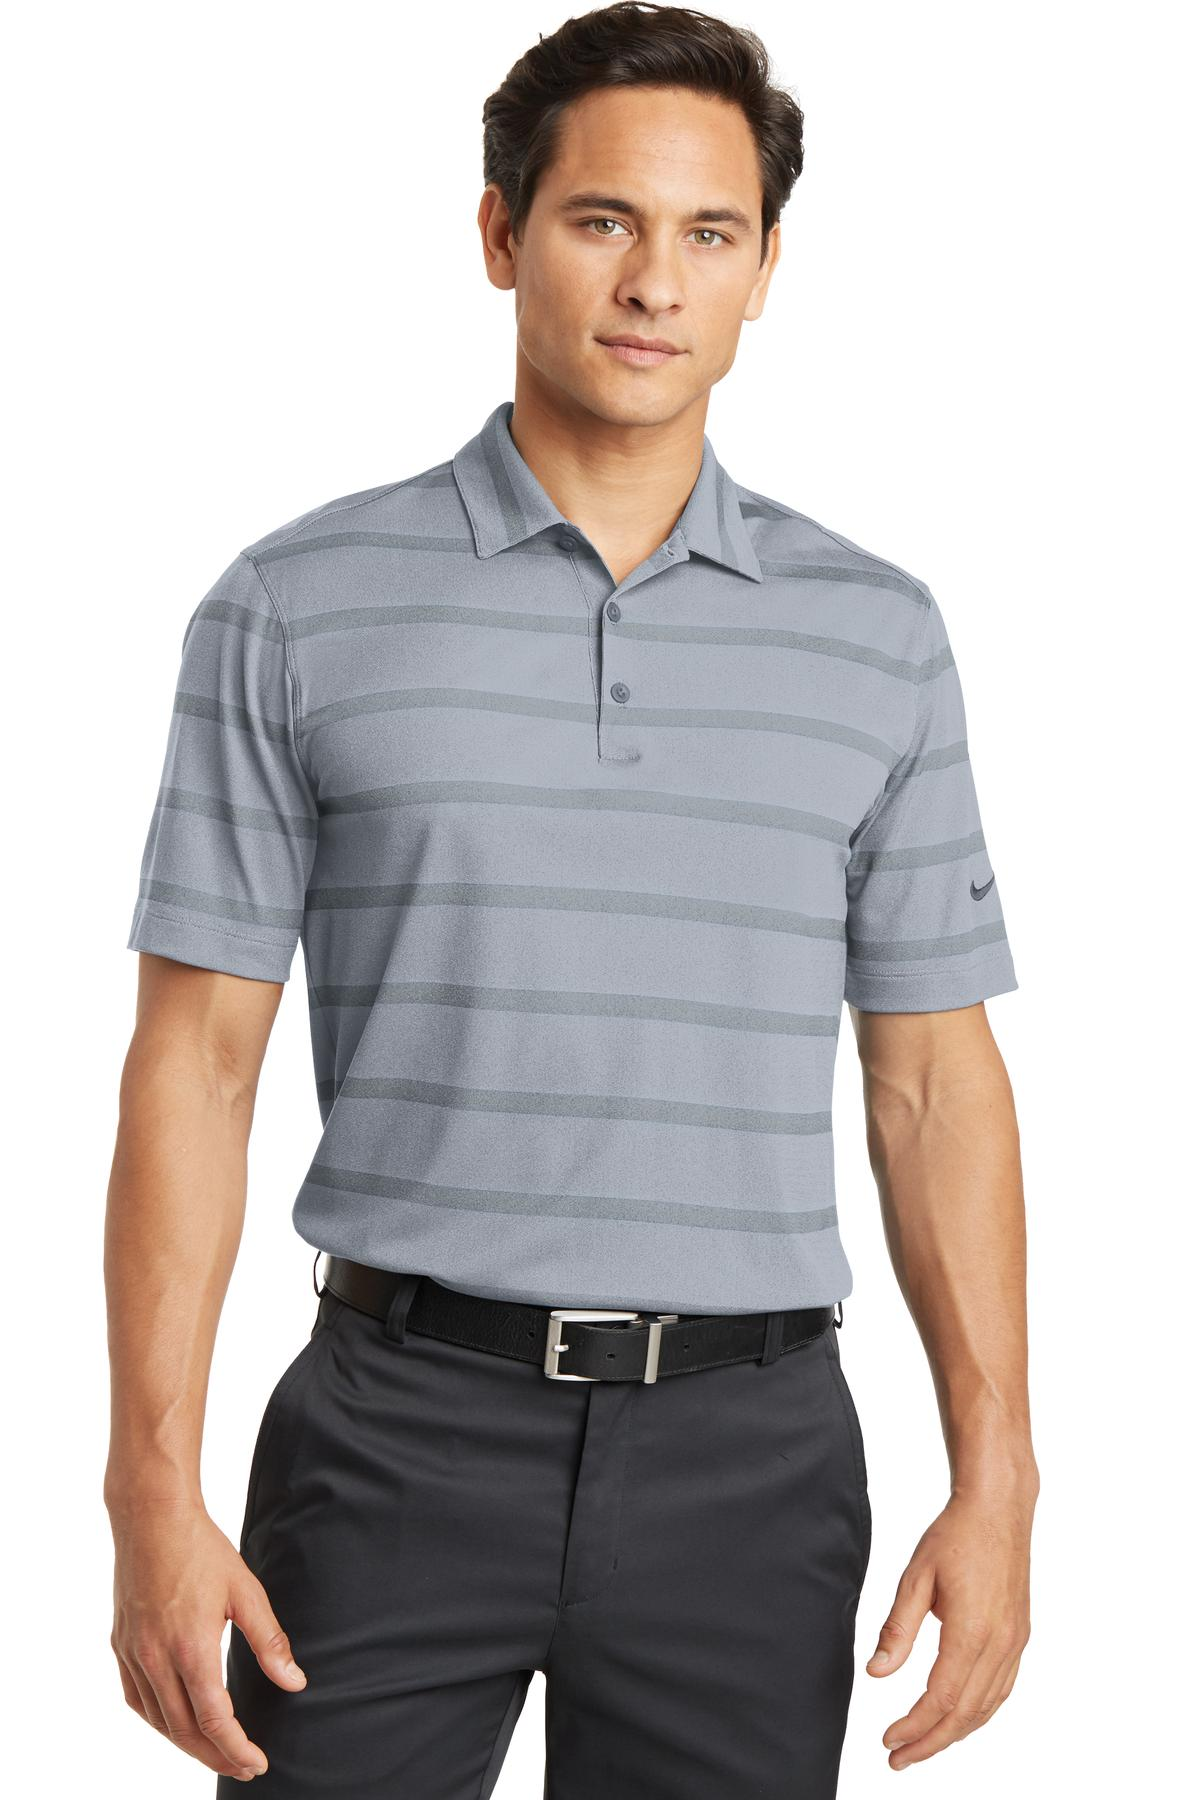 Nike Golf 677786 - Dri-FIT Fade Stripe Polo